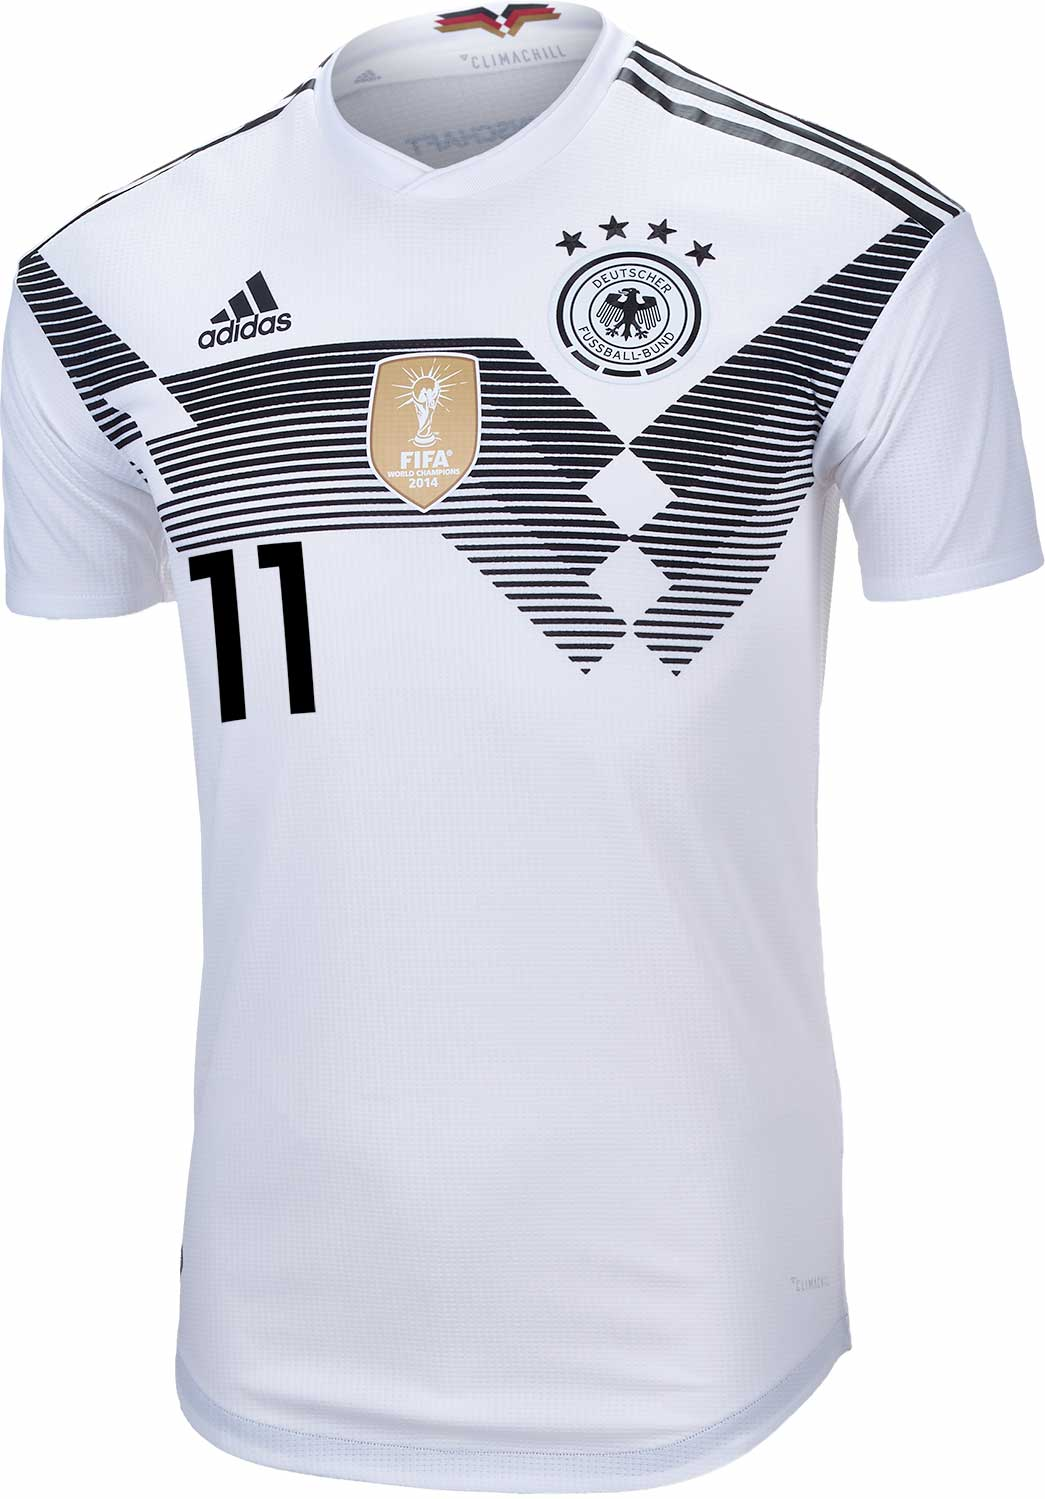 new arrivals 105ff 0f6f8 adidas Marco Reus Germany Authentic Home Jersey 2018-19 ...